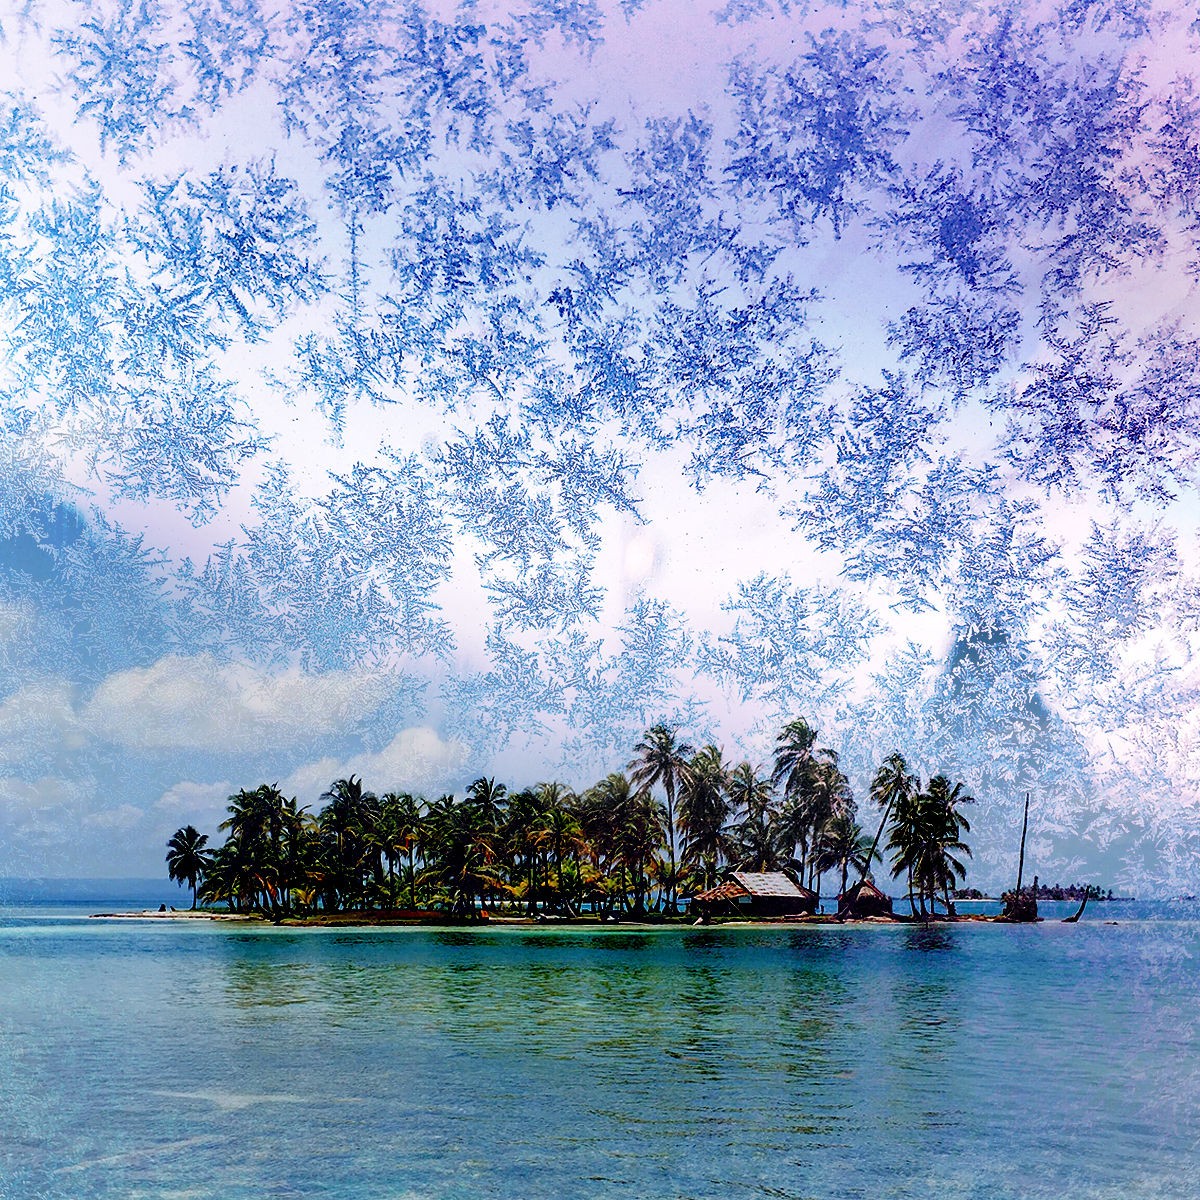 Snowflakes, snow, tropical island with trees and ocean